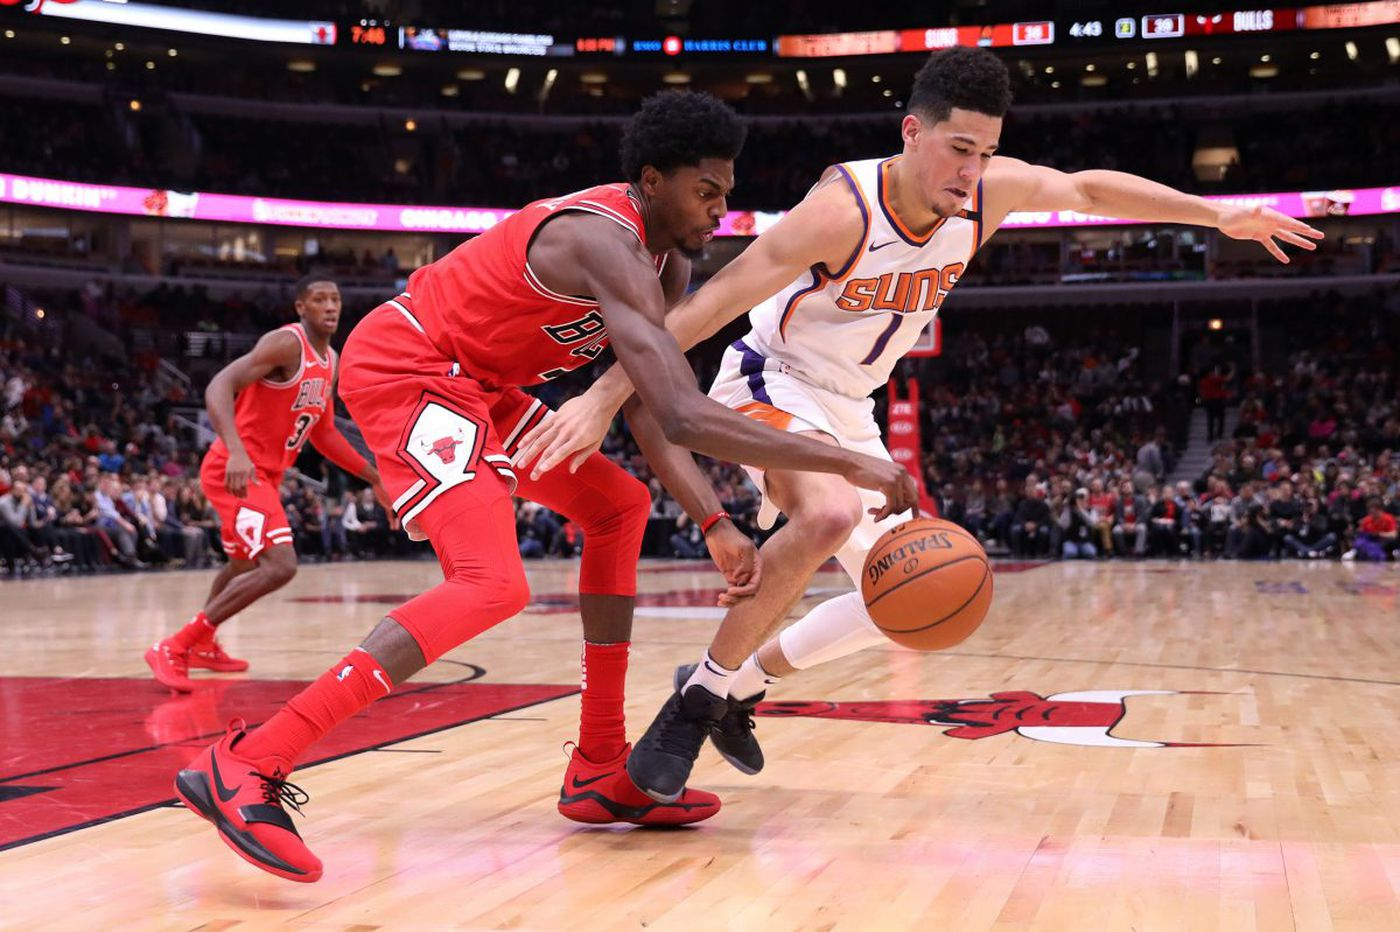 Sixers-Bulls: Looking to corral surprisingly streaking Chicago